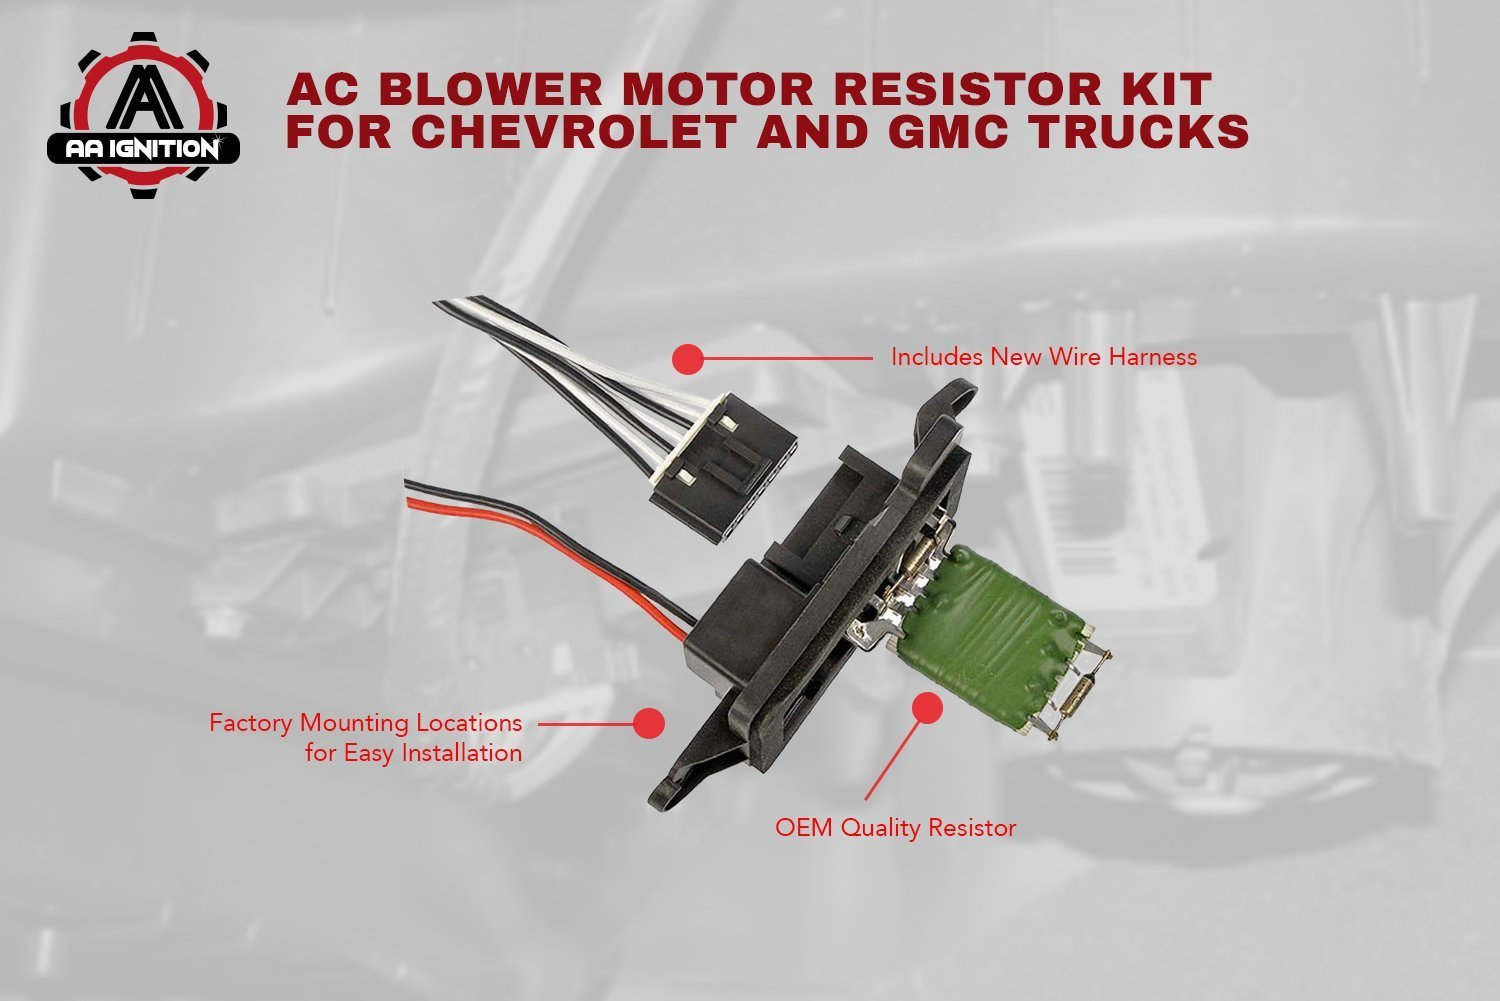 aa ignition products rh aaignition com 2002 chevy silverado blower motor  wiring diagram chevy blower motor wiring diagram